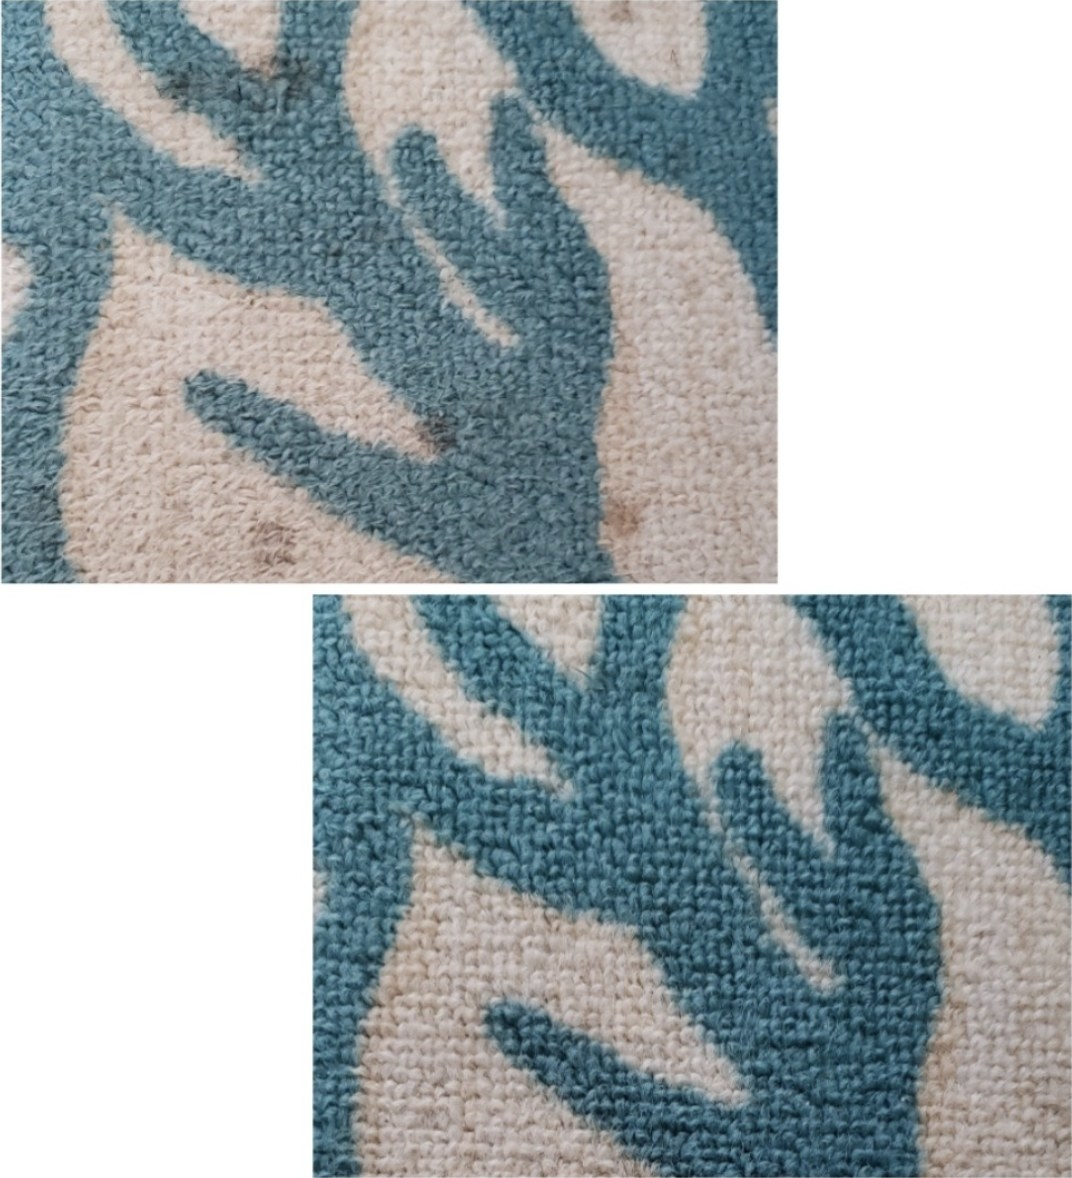 A before and after picture of a rug with a stain on it